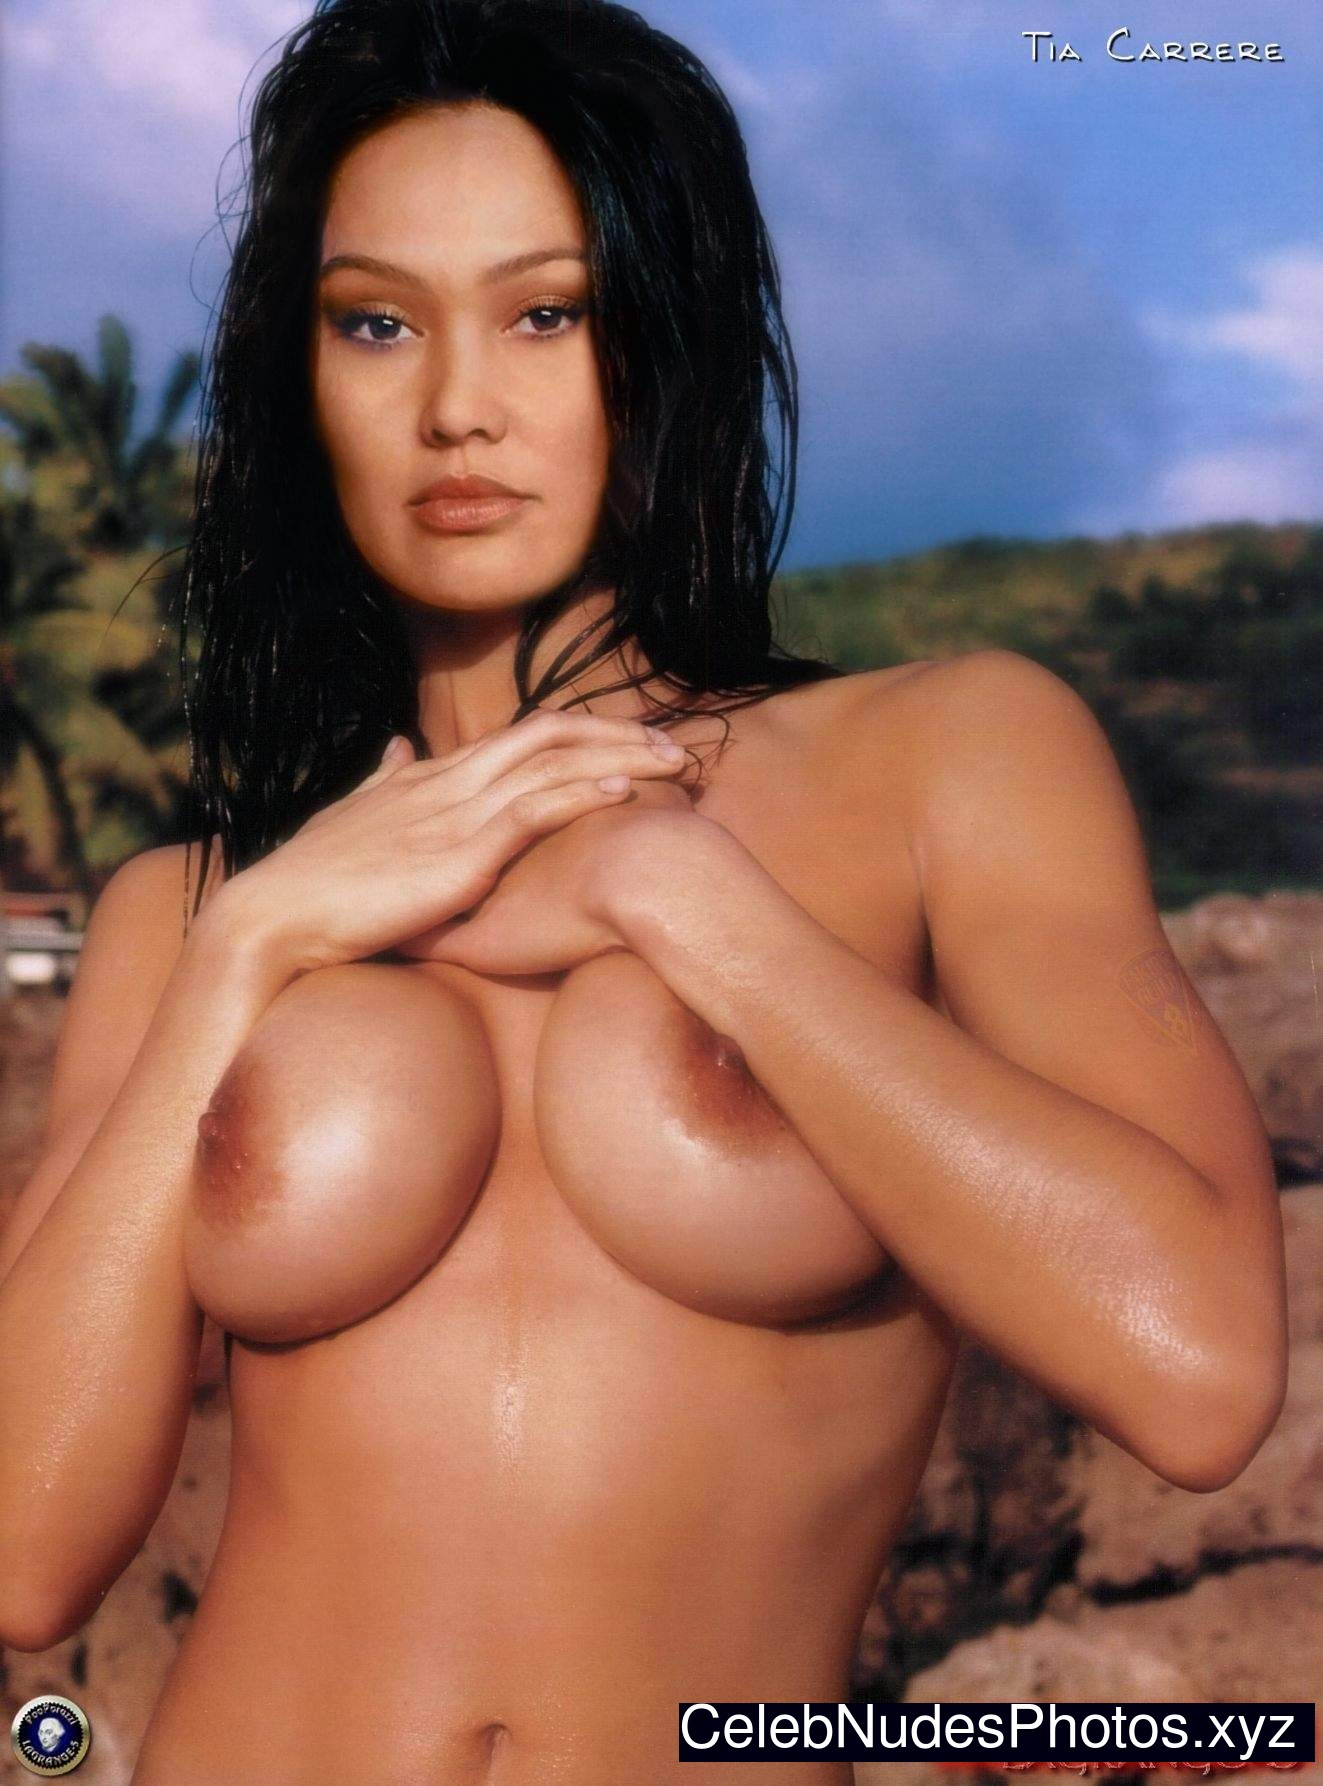 pics from tia carrere playboy